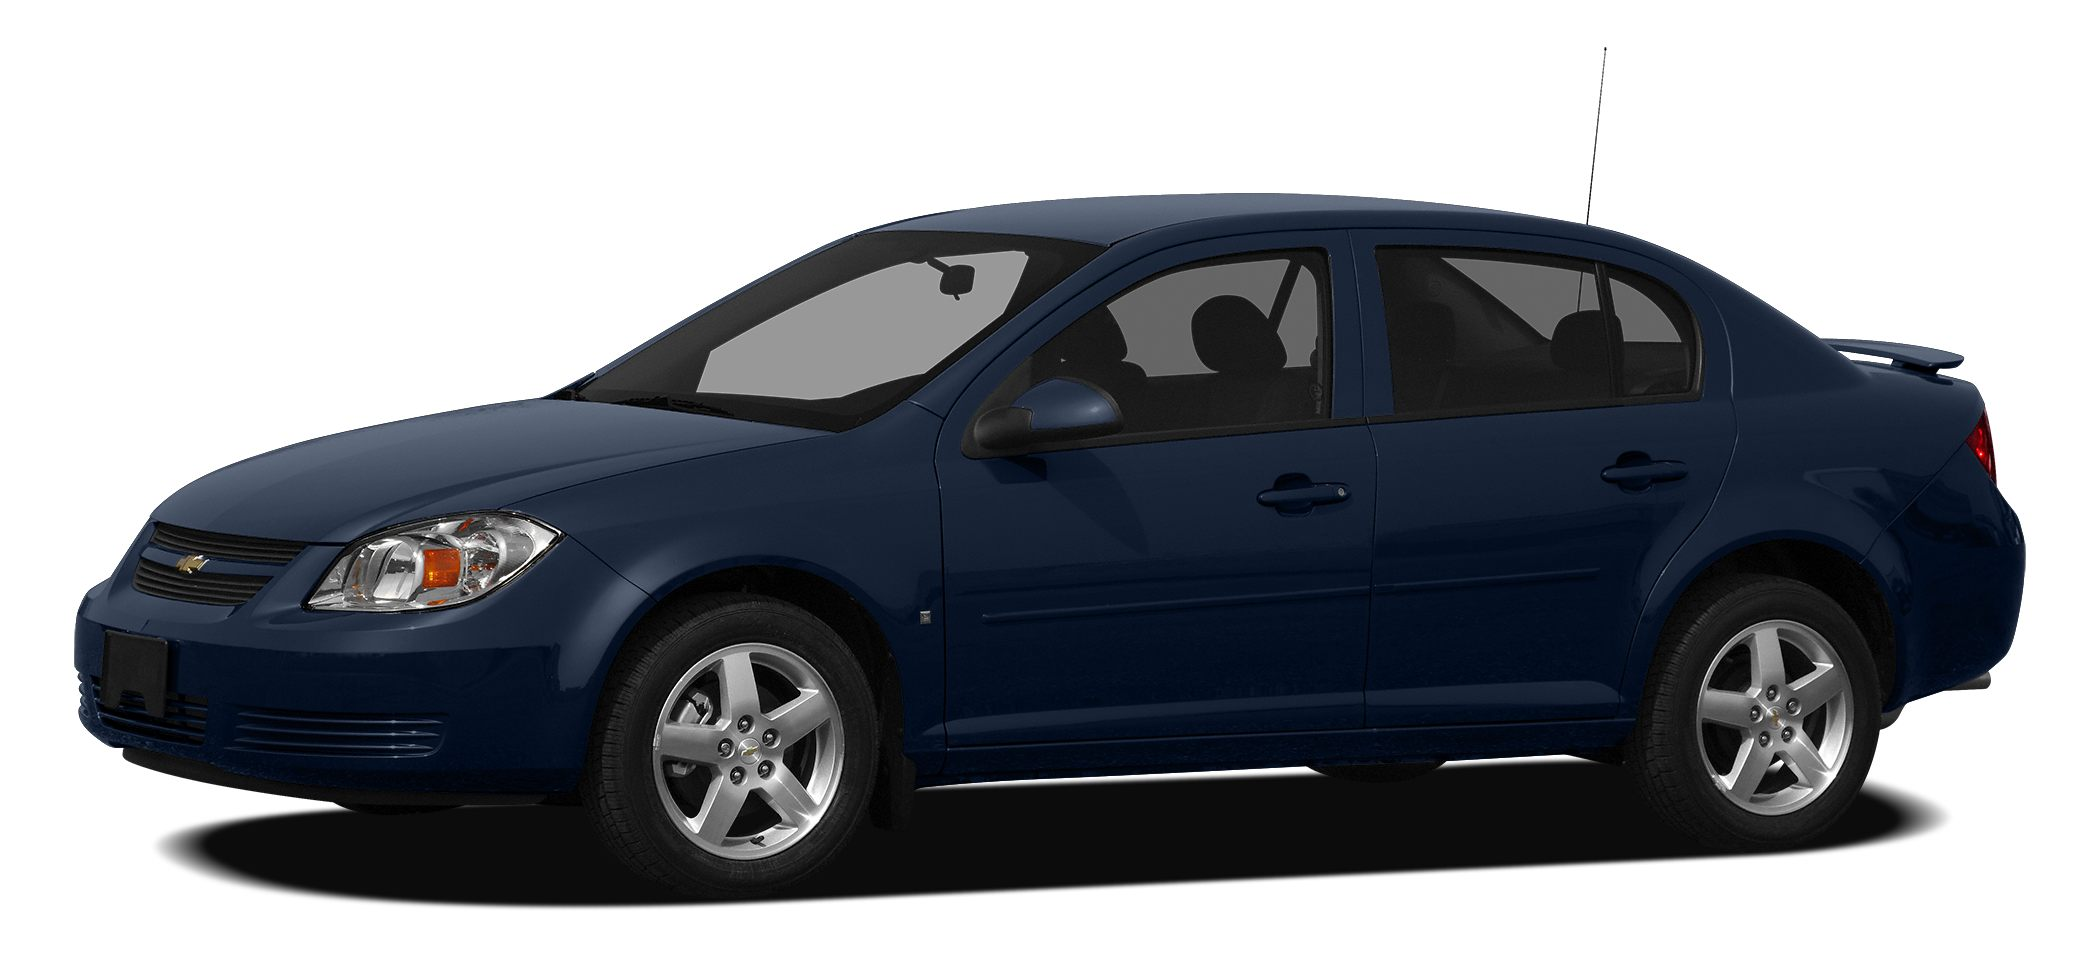 2010 Chevrolet Cobalt LS Snag a steal on this 2010 Chevrolet Cobalt LS before someone else snatche